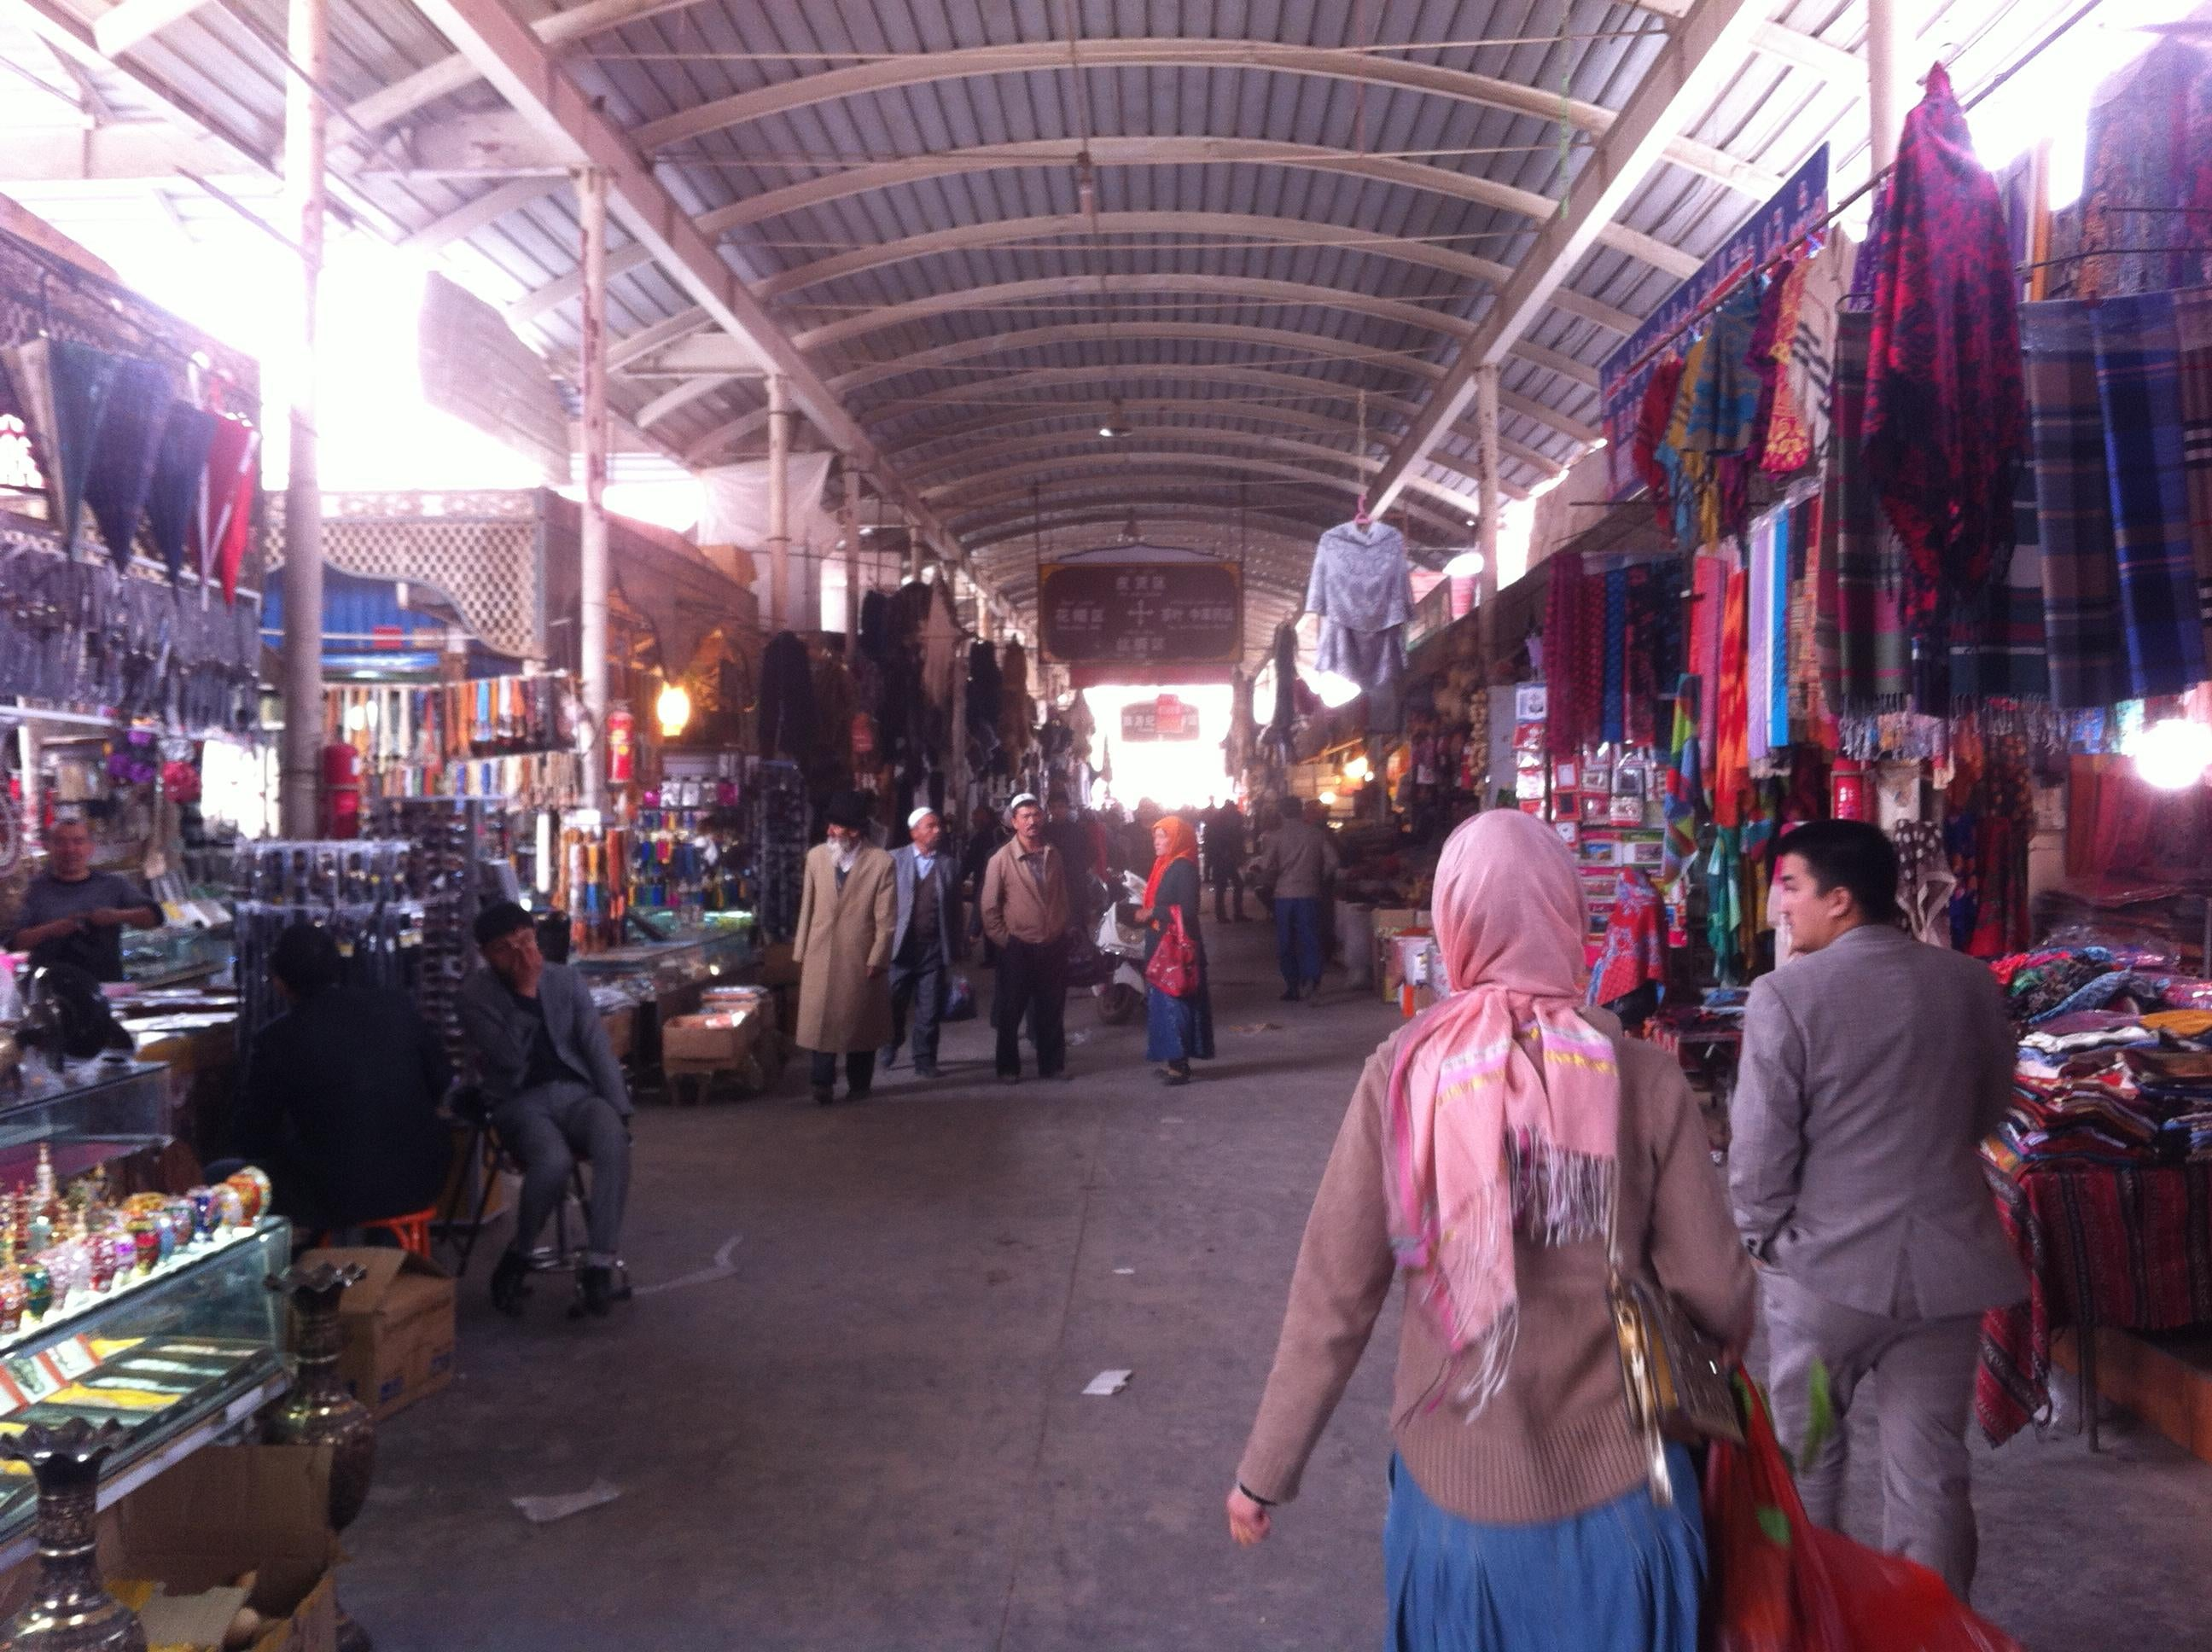 Multitud en Mercado de Kashgar